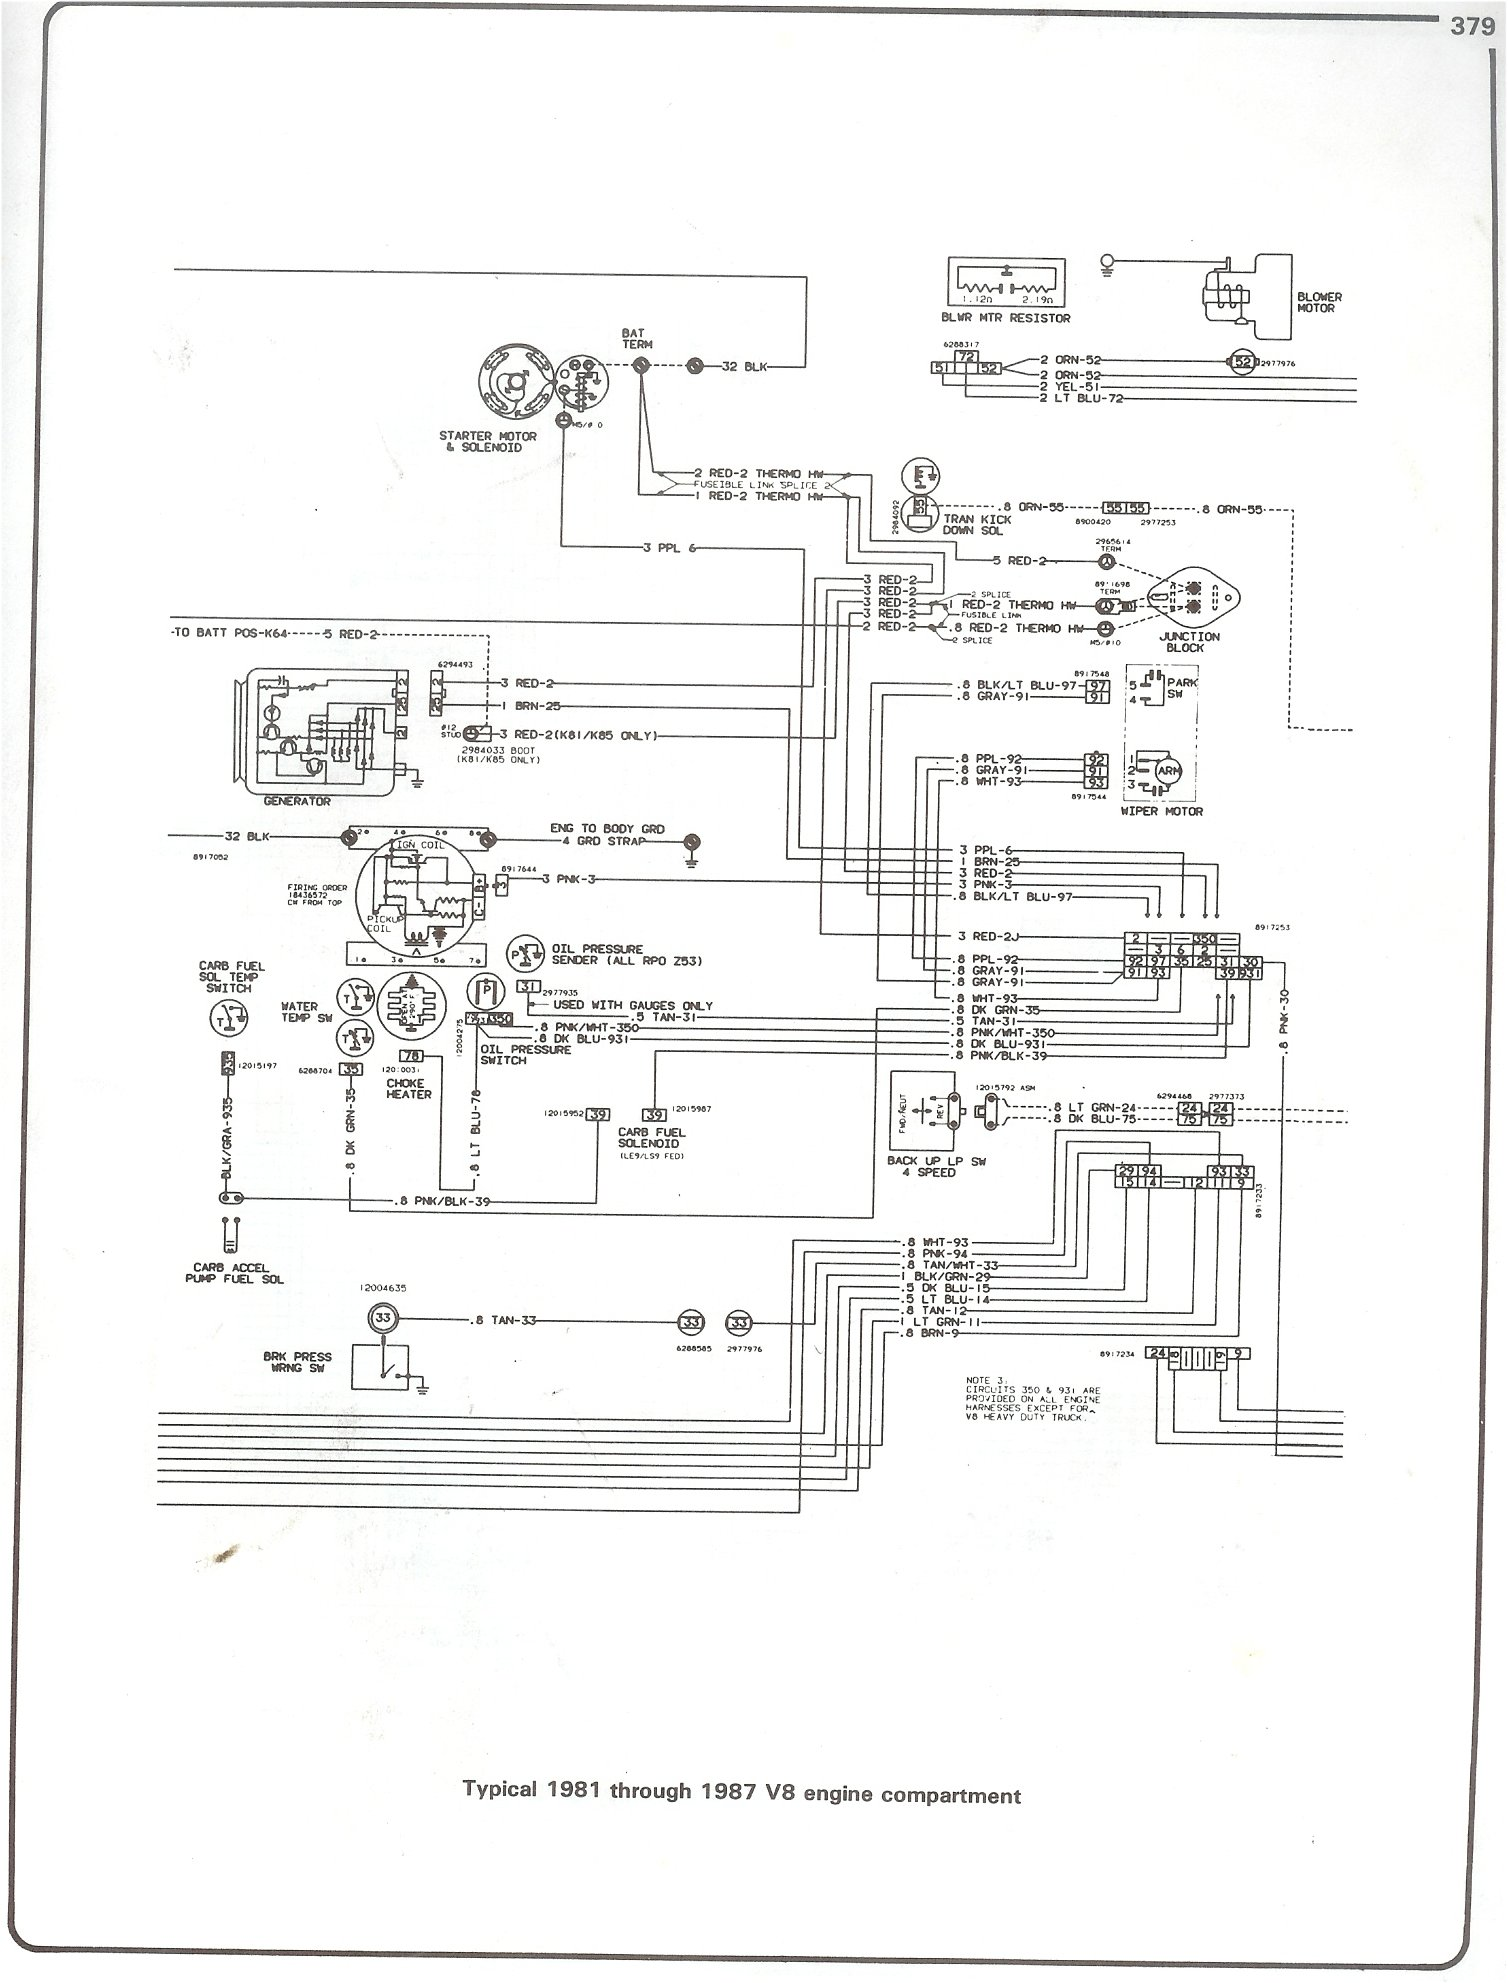 76 Camaro Wiring Diagram Free For You Library Rh 17 Codingcommunity De 2010 2ss 2000